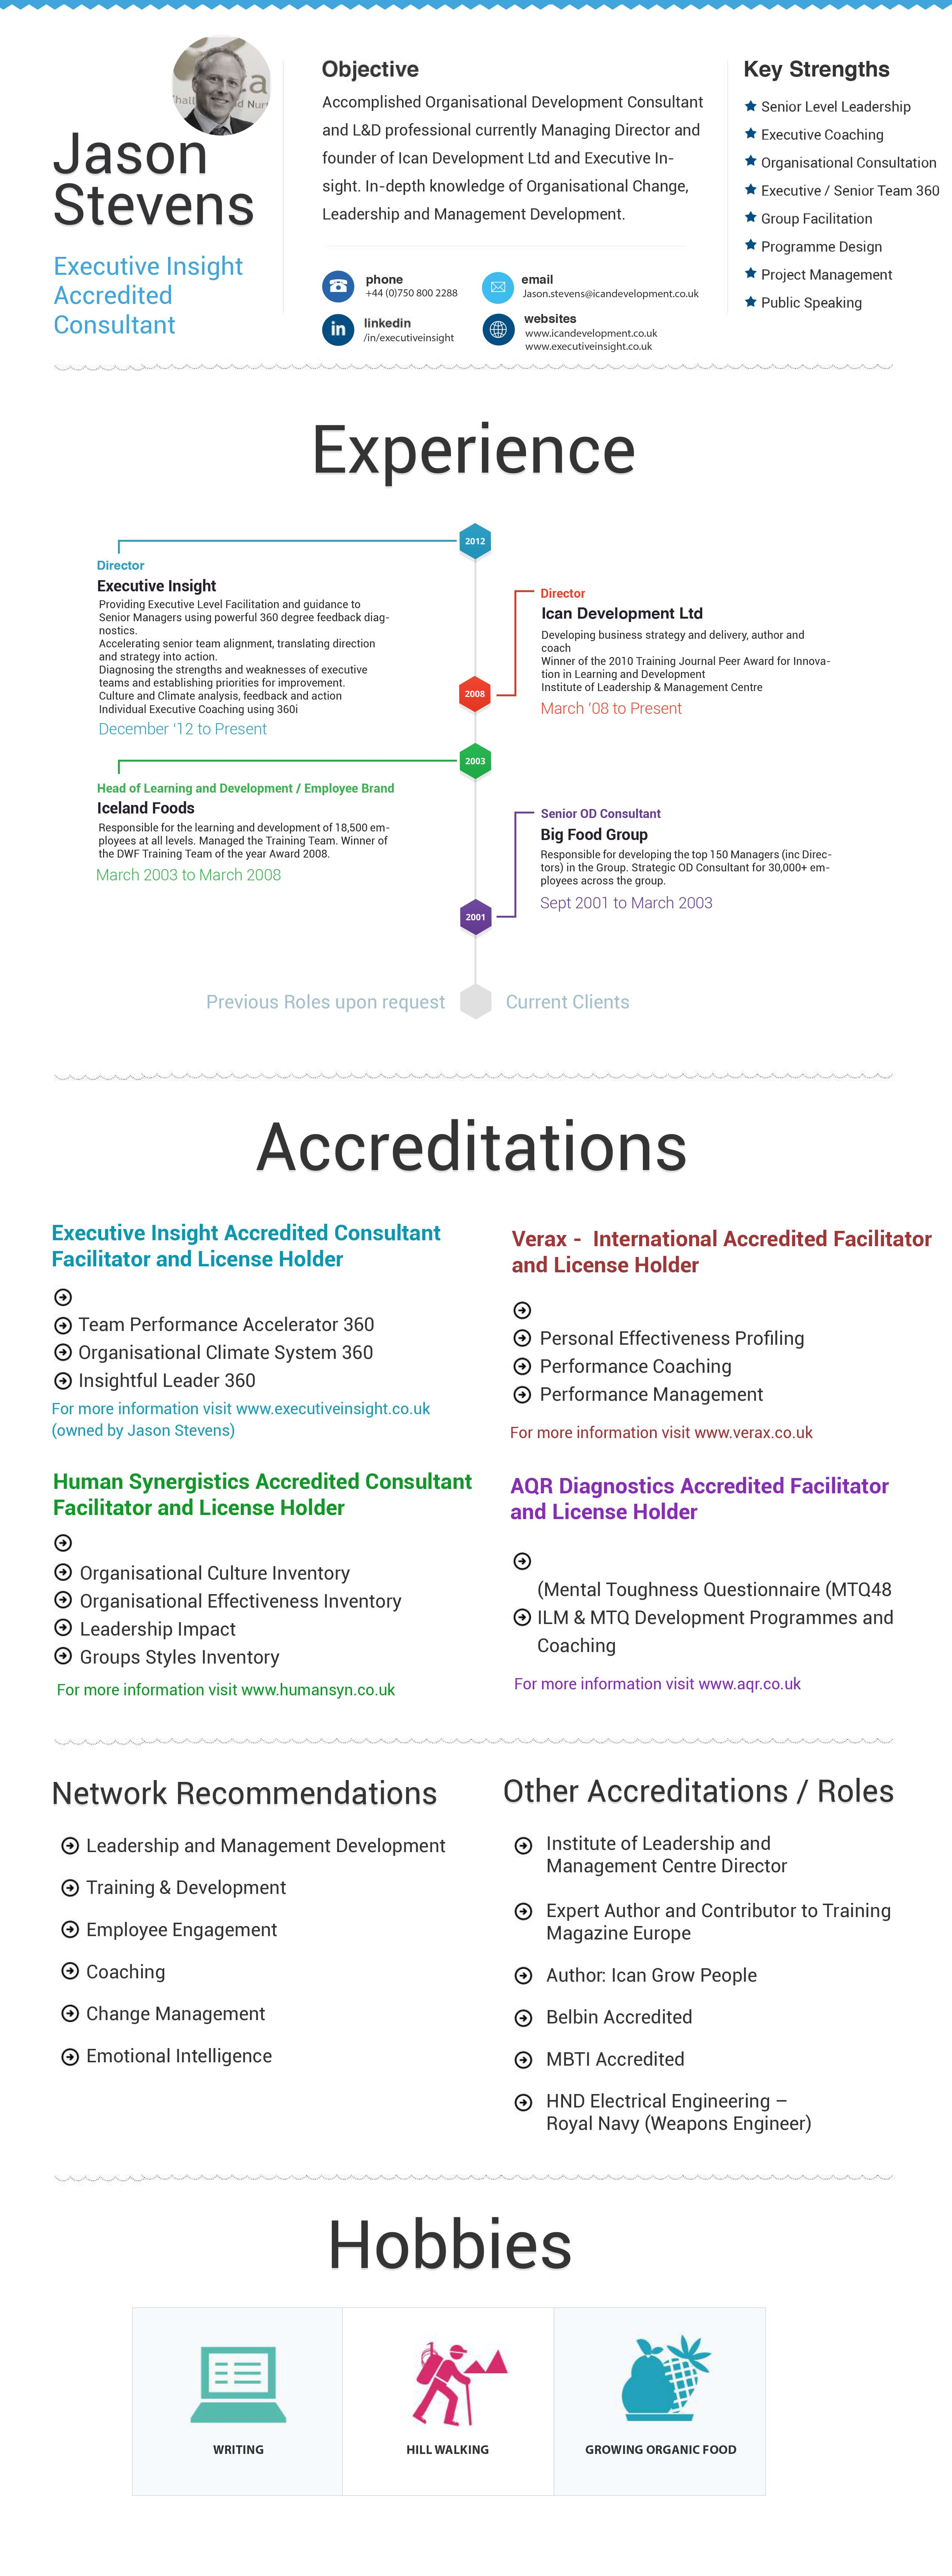 infographic resume of jason stevens accomplished organisational development consultant and ld professional currently managing